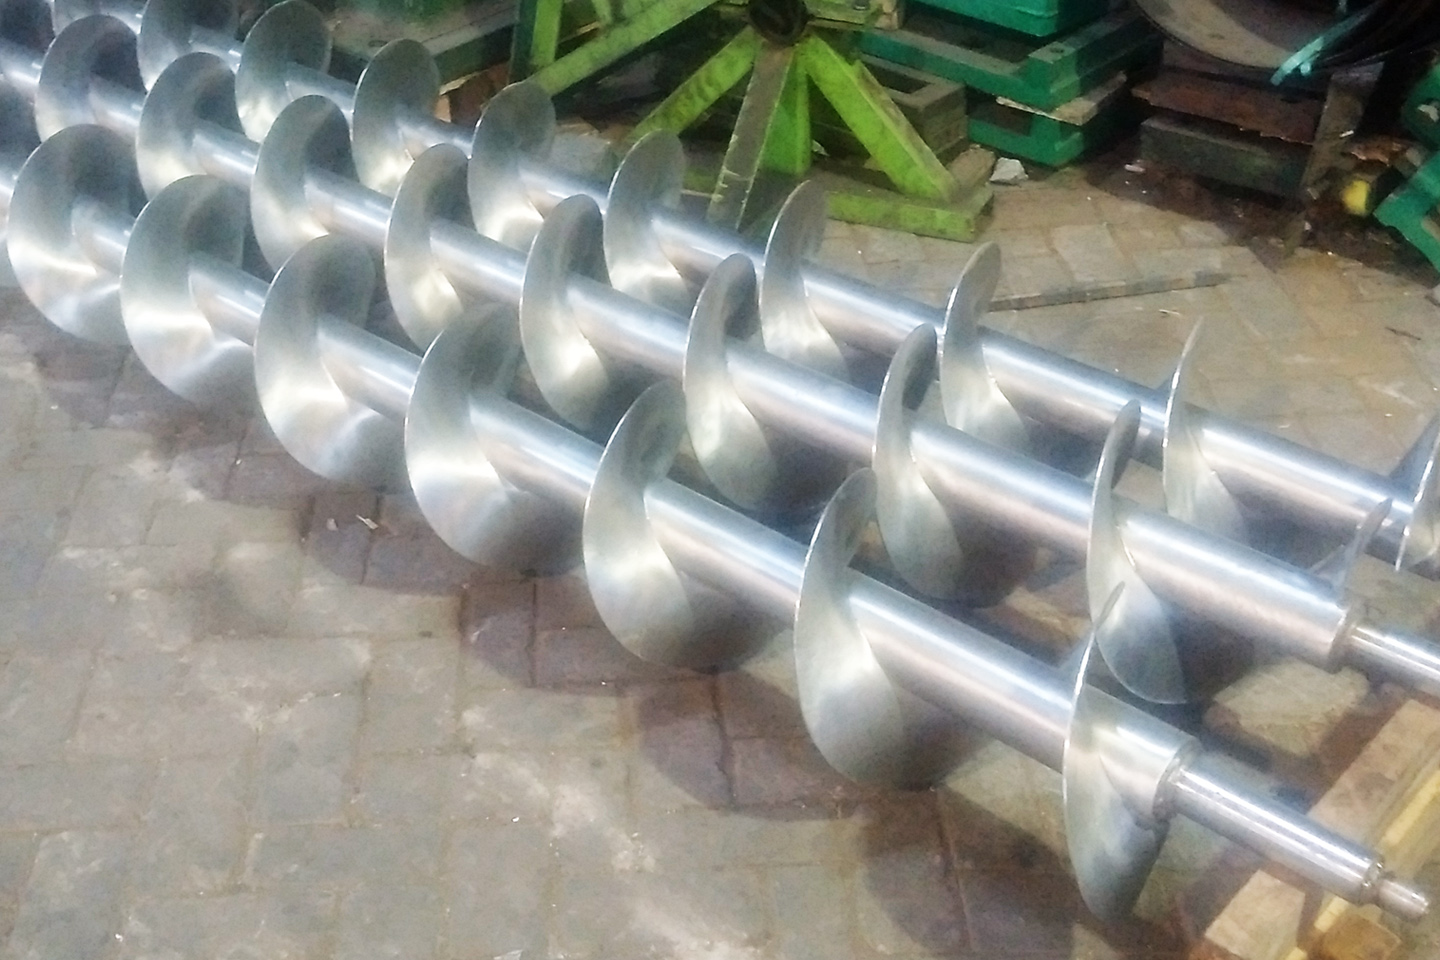 Special parts for a food processing company